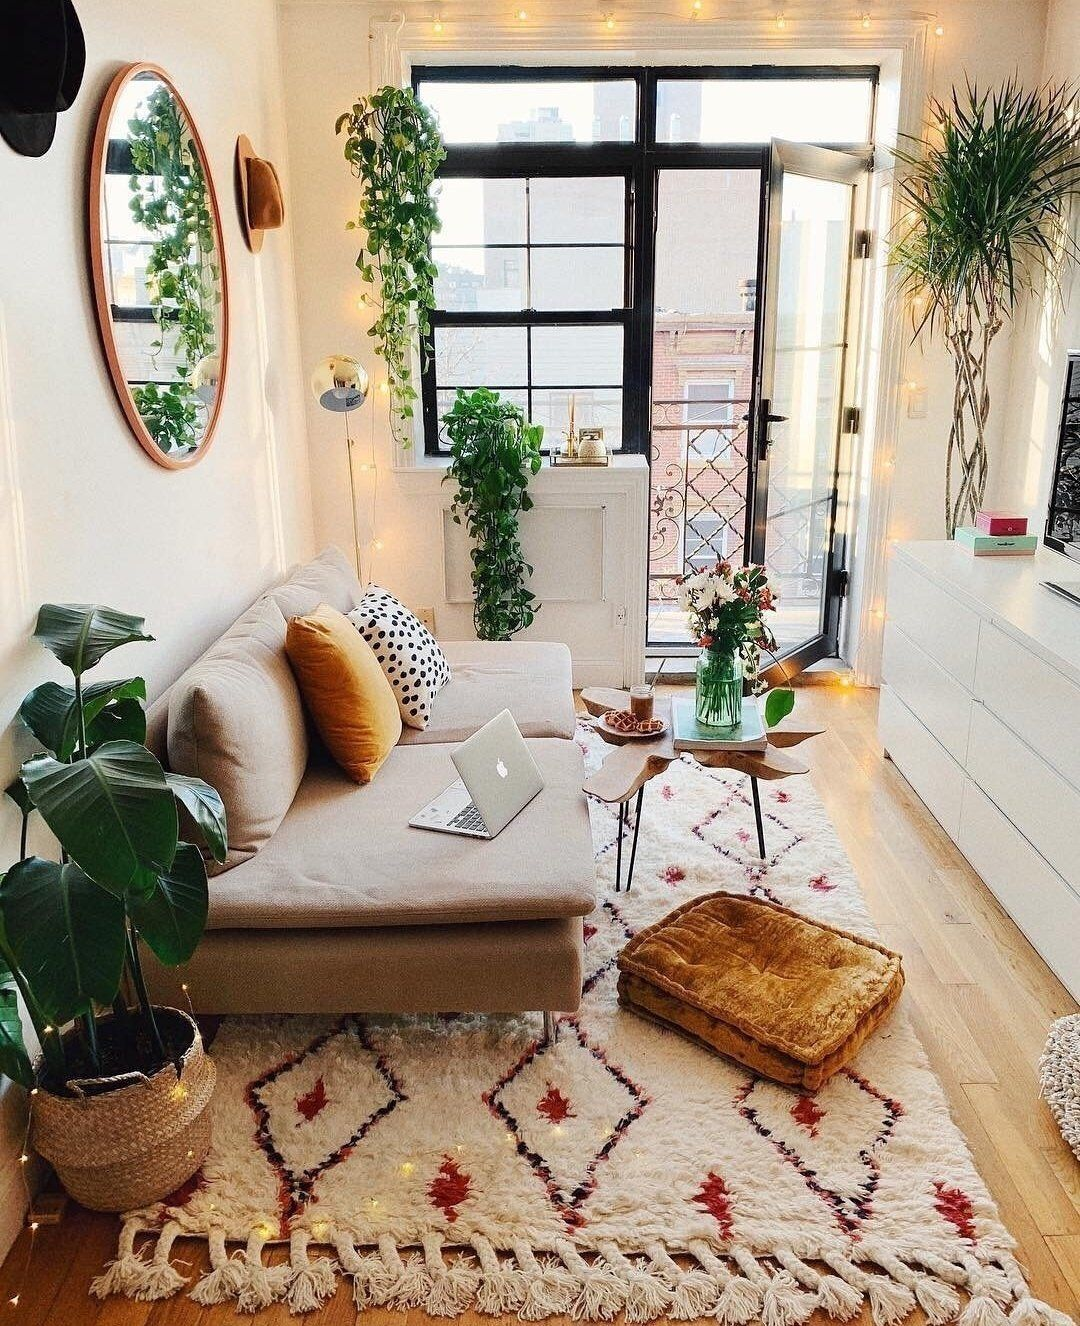 Inspiring Sitting Room Decor Ideas For Inviting And Cozy: 47 Inspirational Apartment Design For Cozy Living